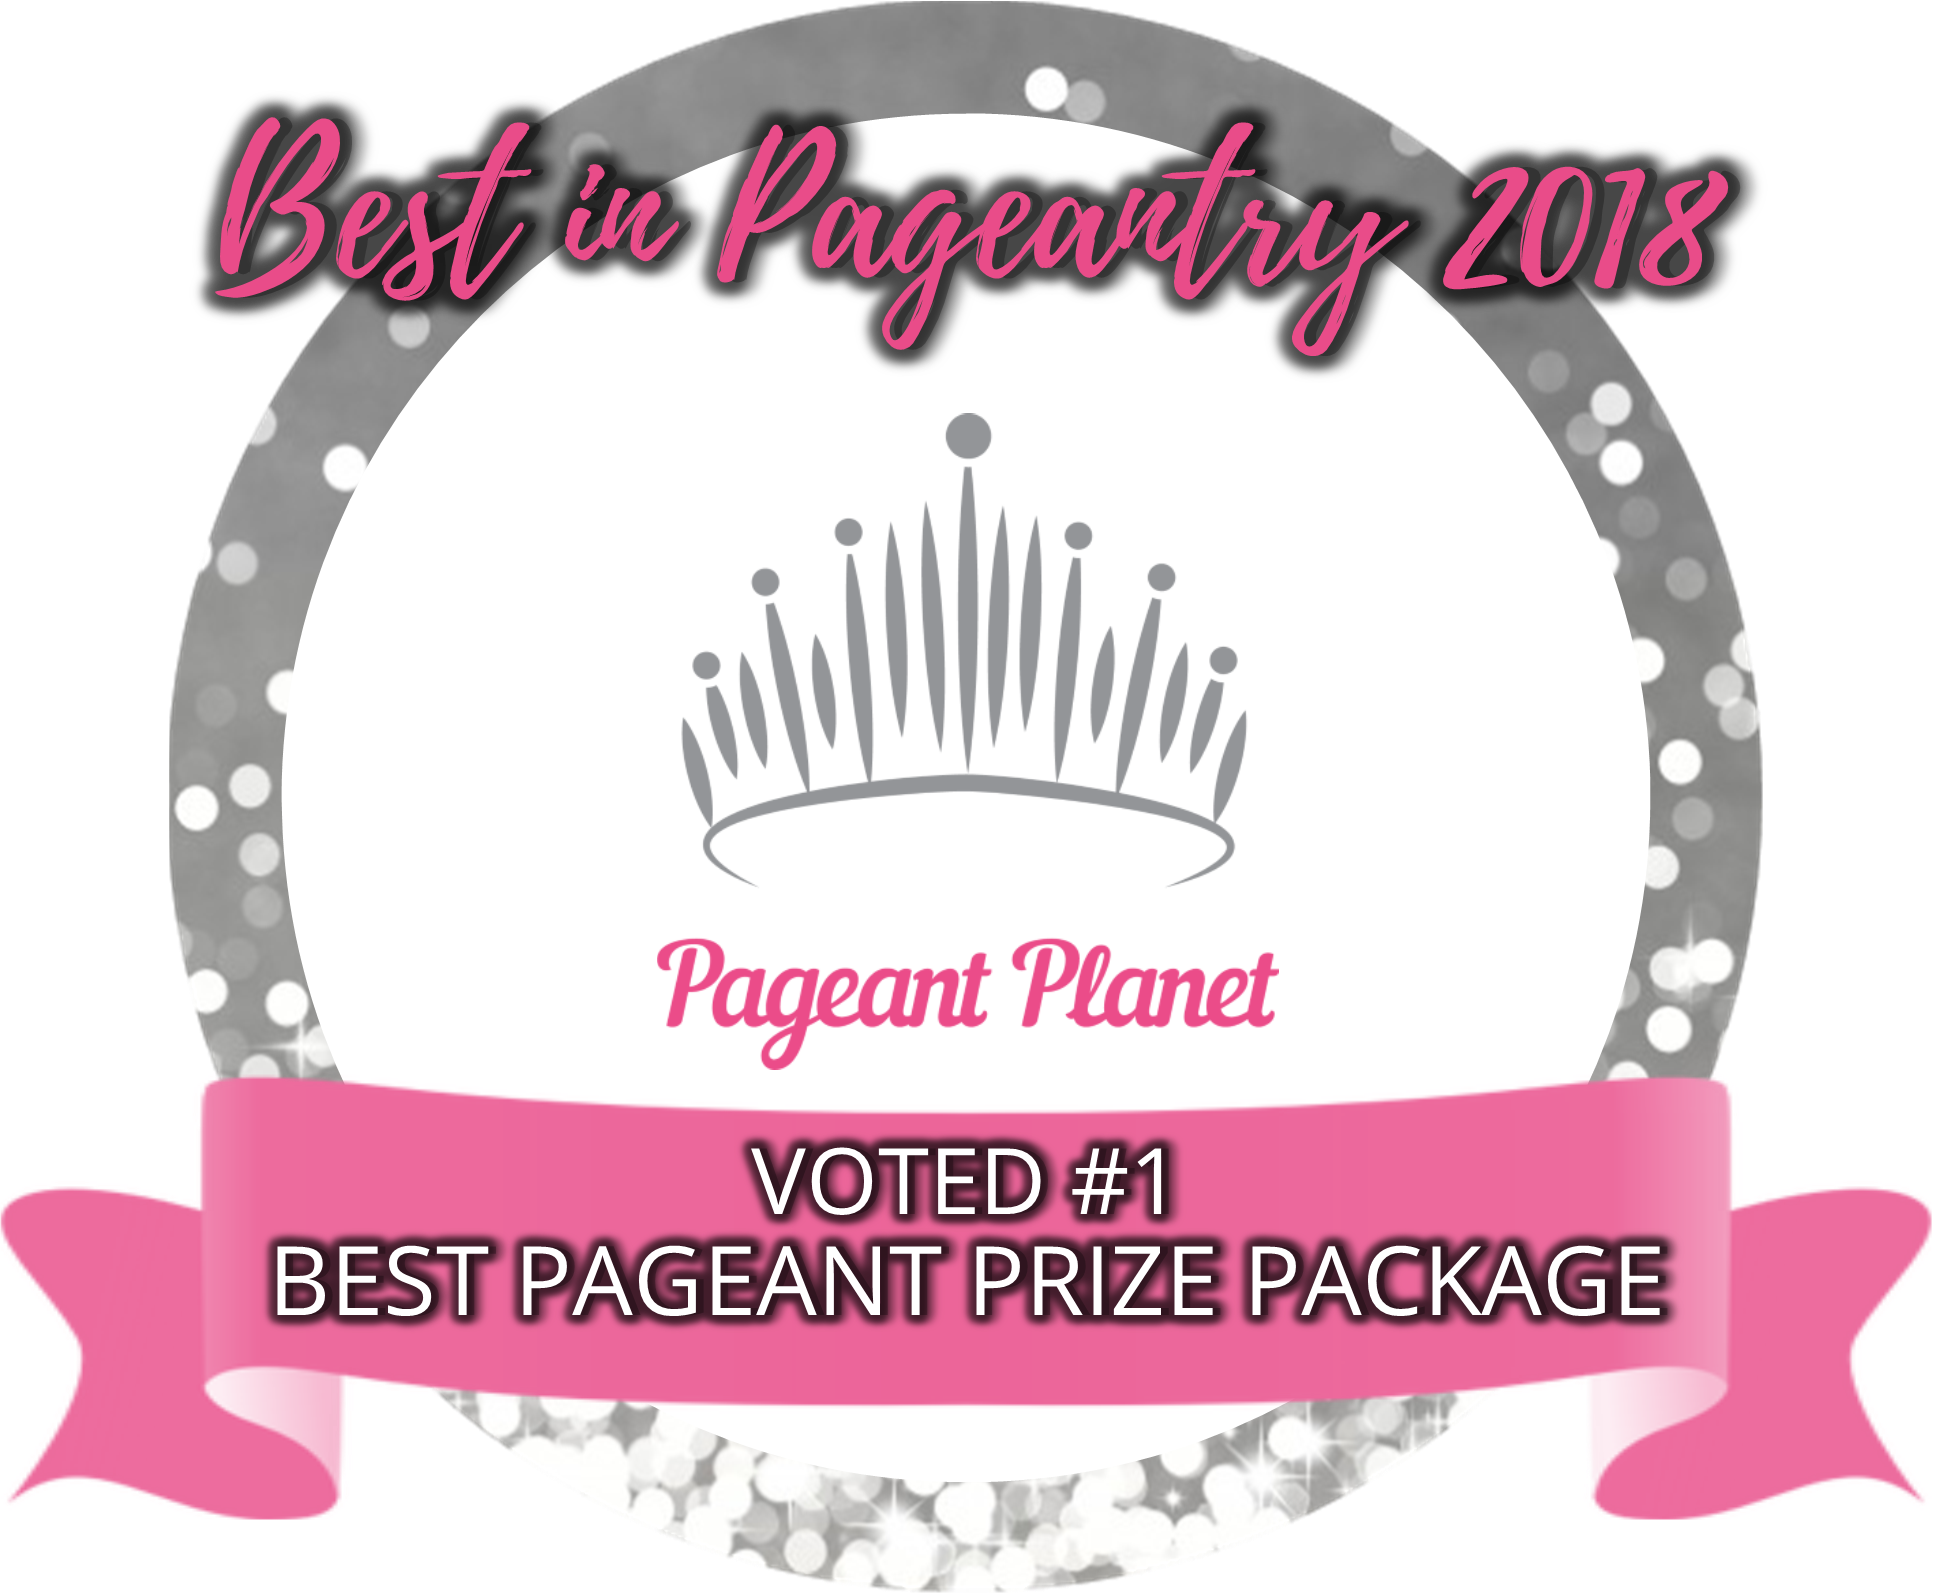 #1 Best Pageant Prize Package